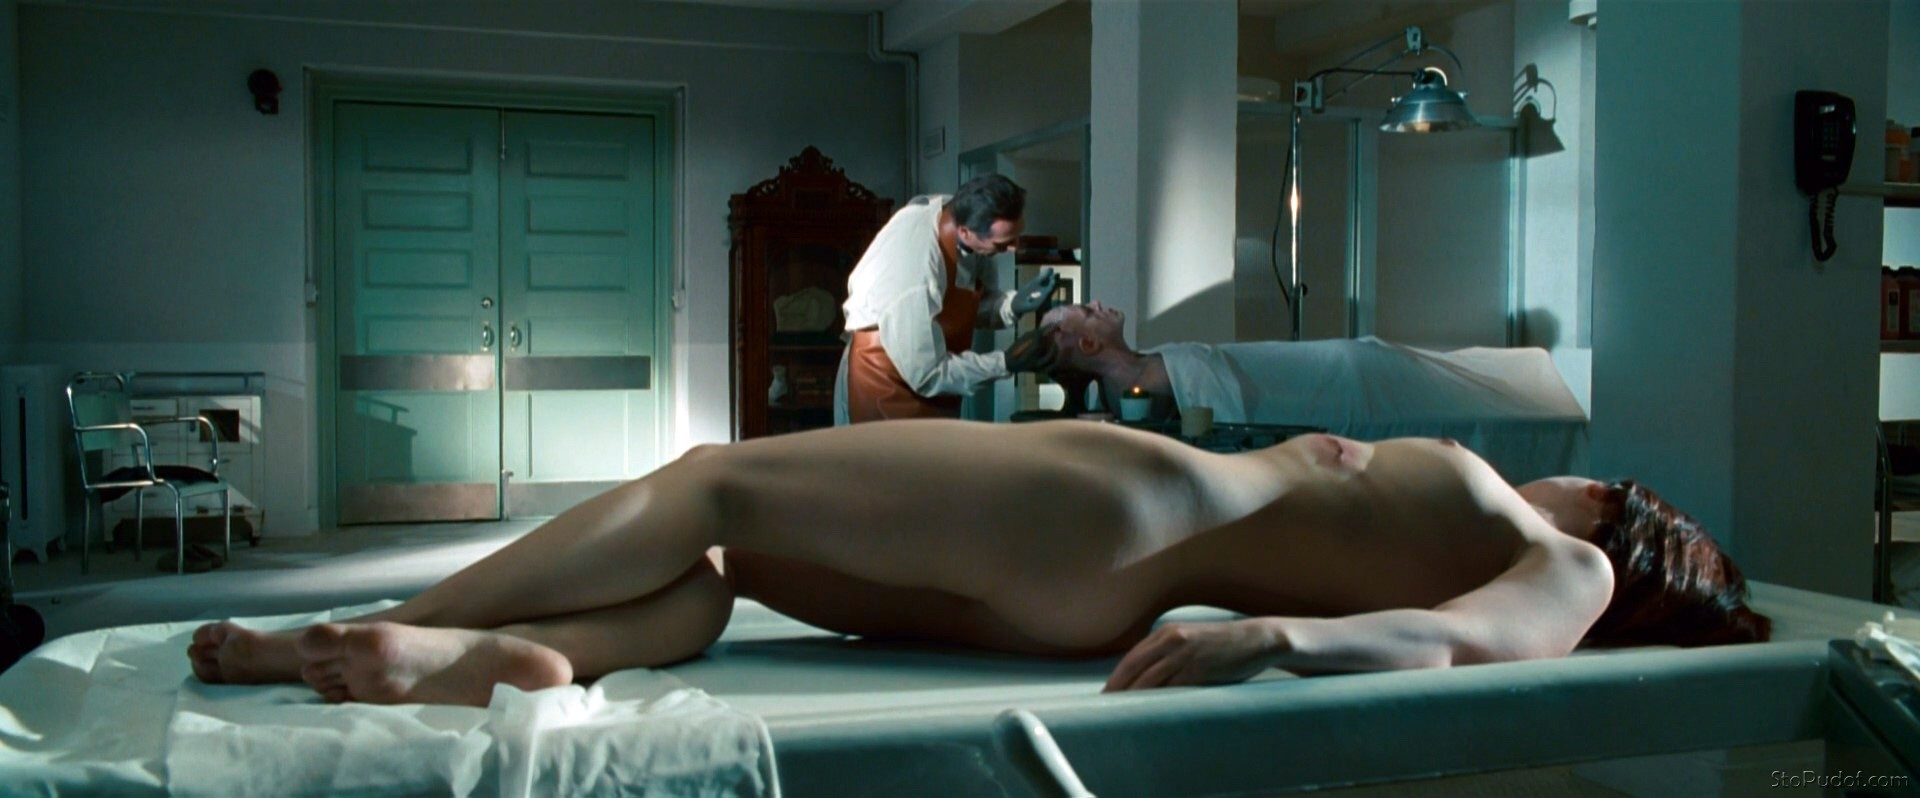 Christina Ricci video nude - UkPhotoSafari